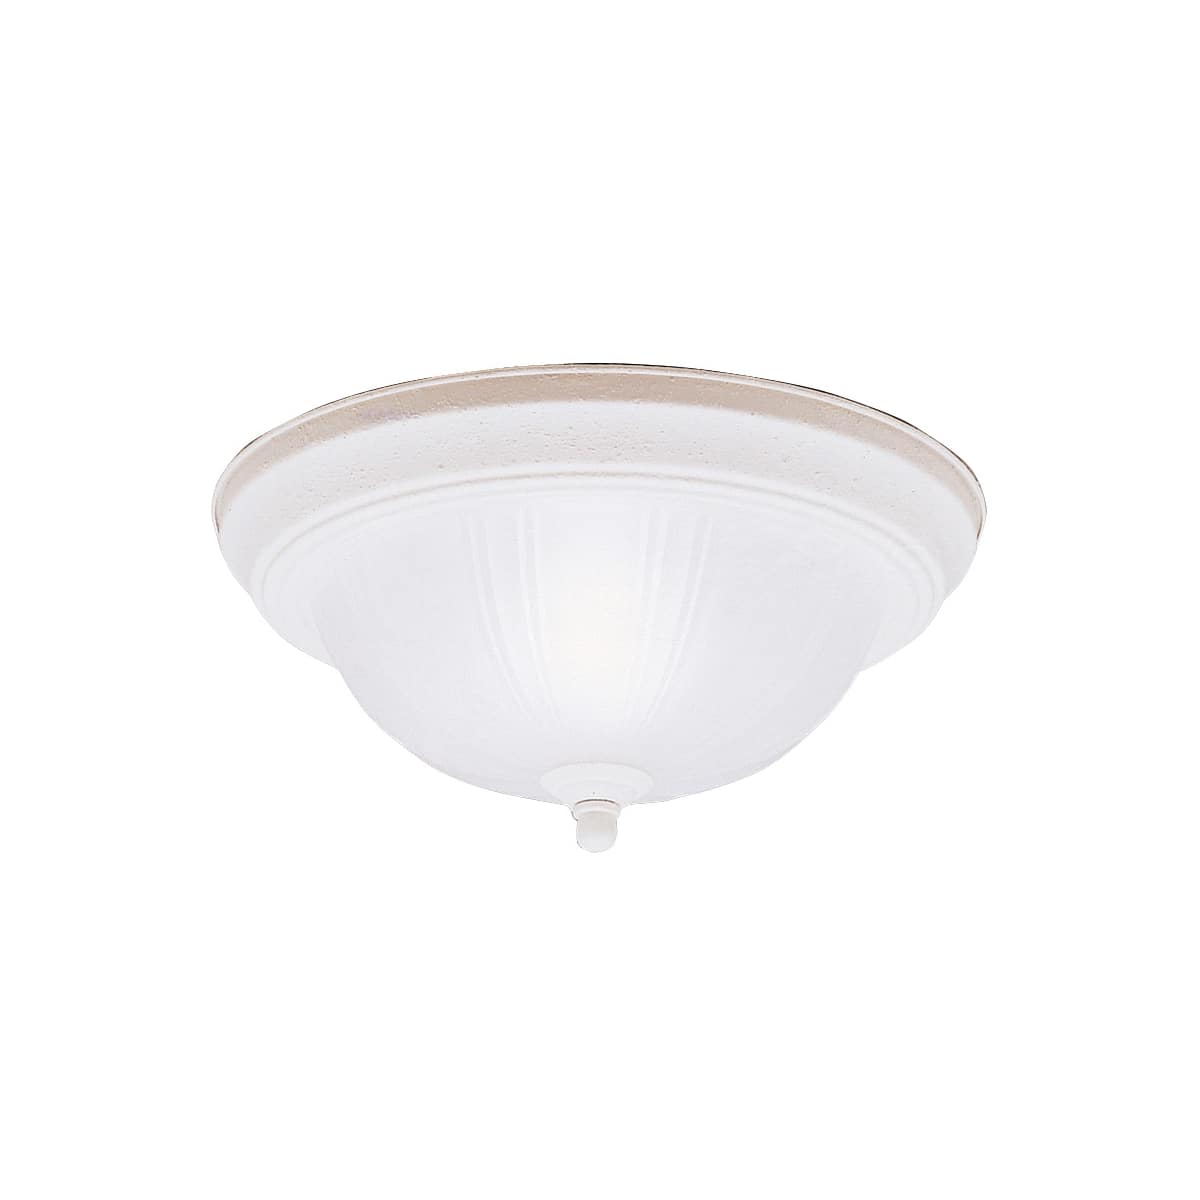 Kichler 2 Light Flush Mount Indoor Ceiling Fixture